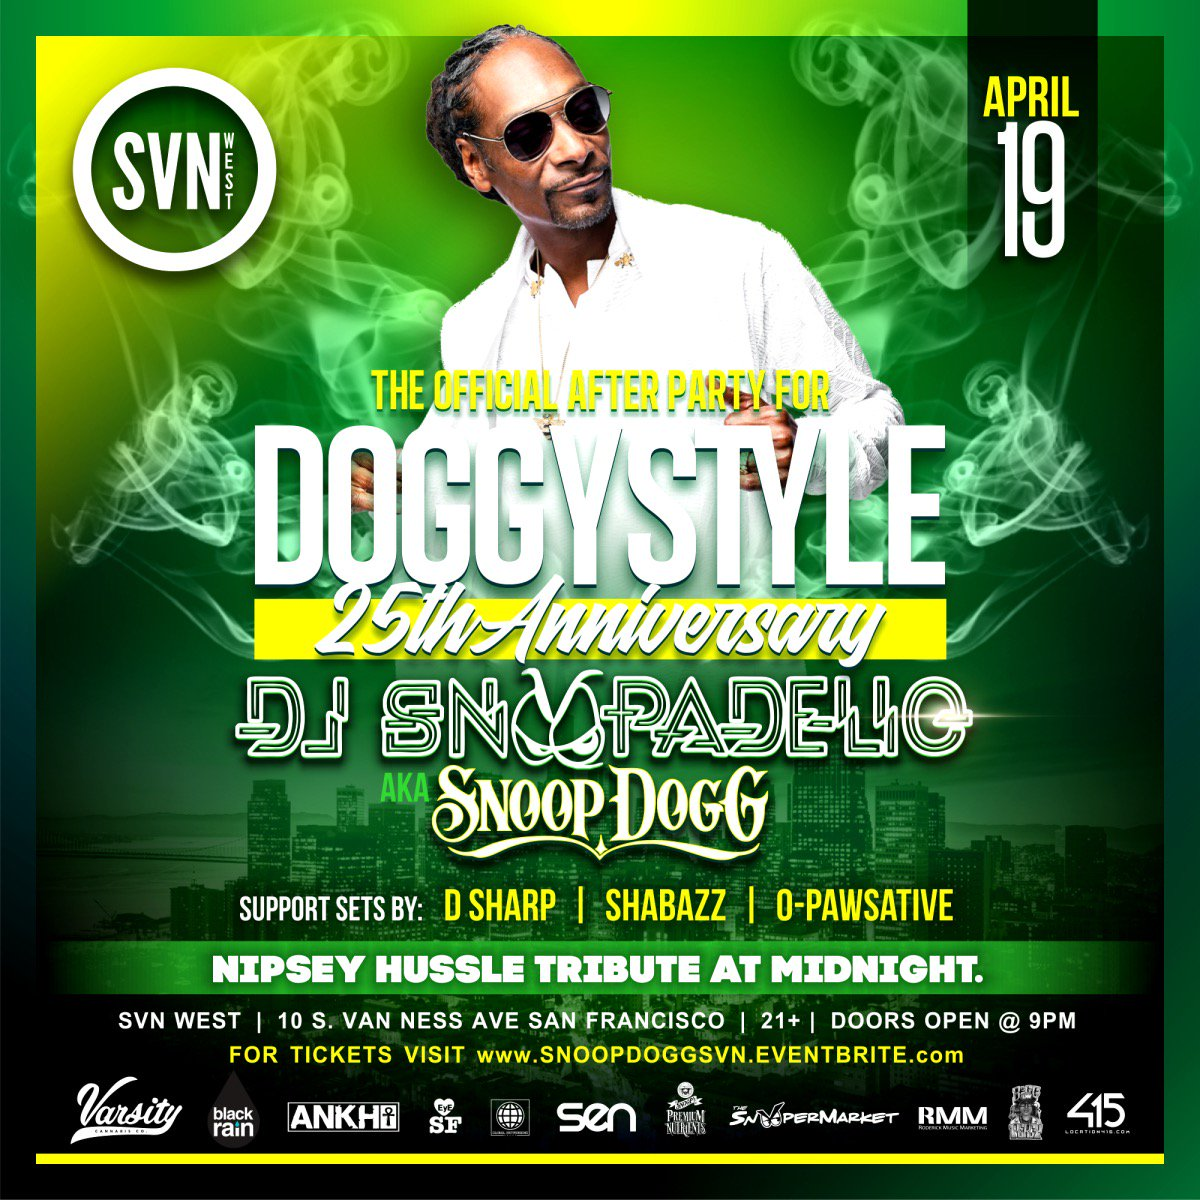 After the sold out SF show tonight dj snoopadelic on the decks for the afterparty ???????????? @bigpercyrmm does it again ! https://t.co/sDvNV8K9UK